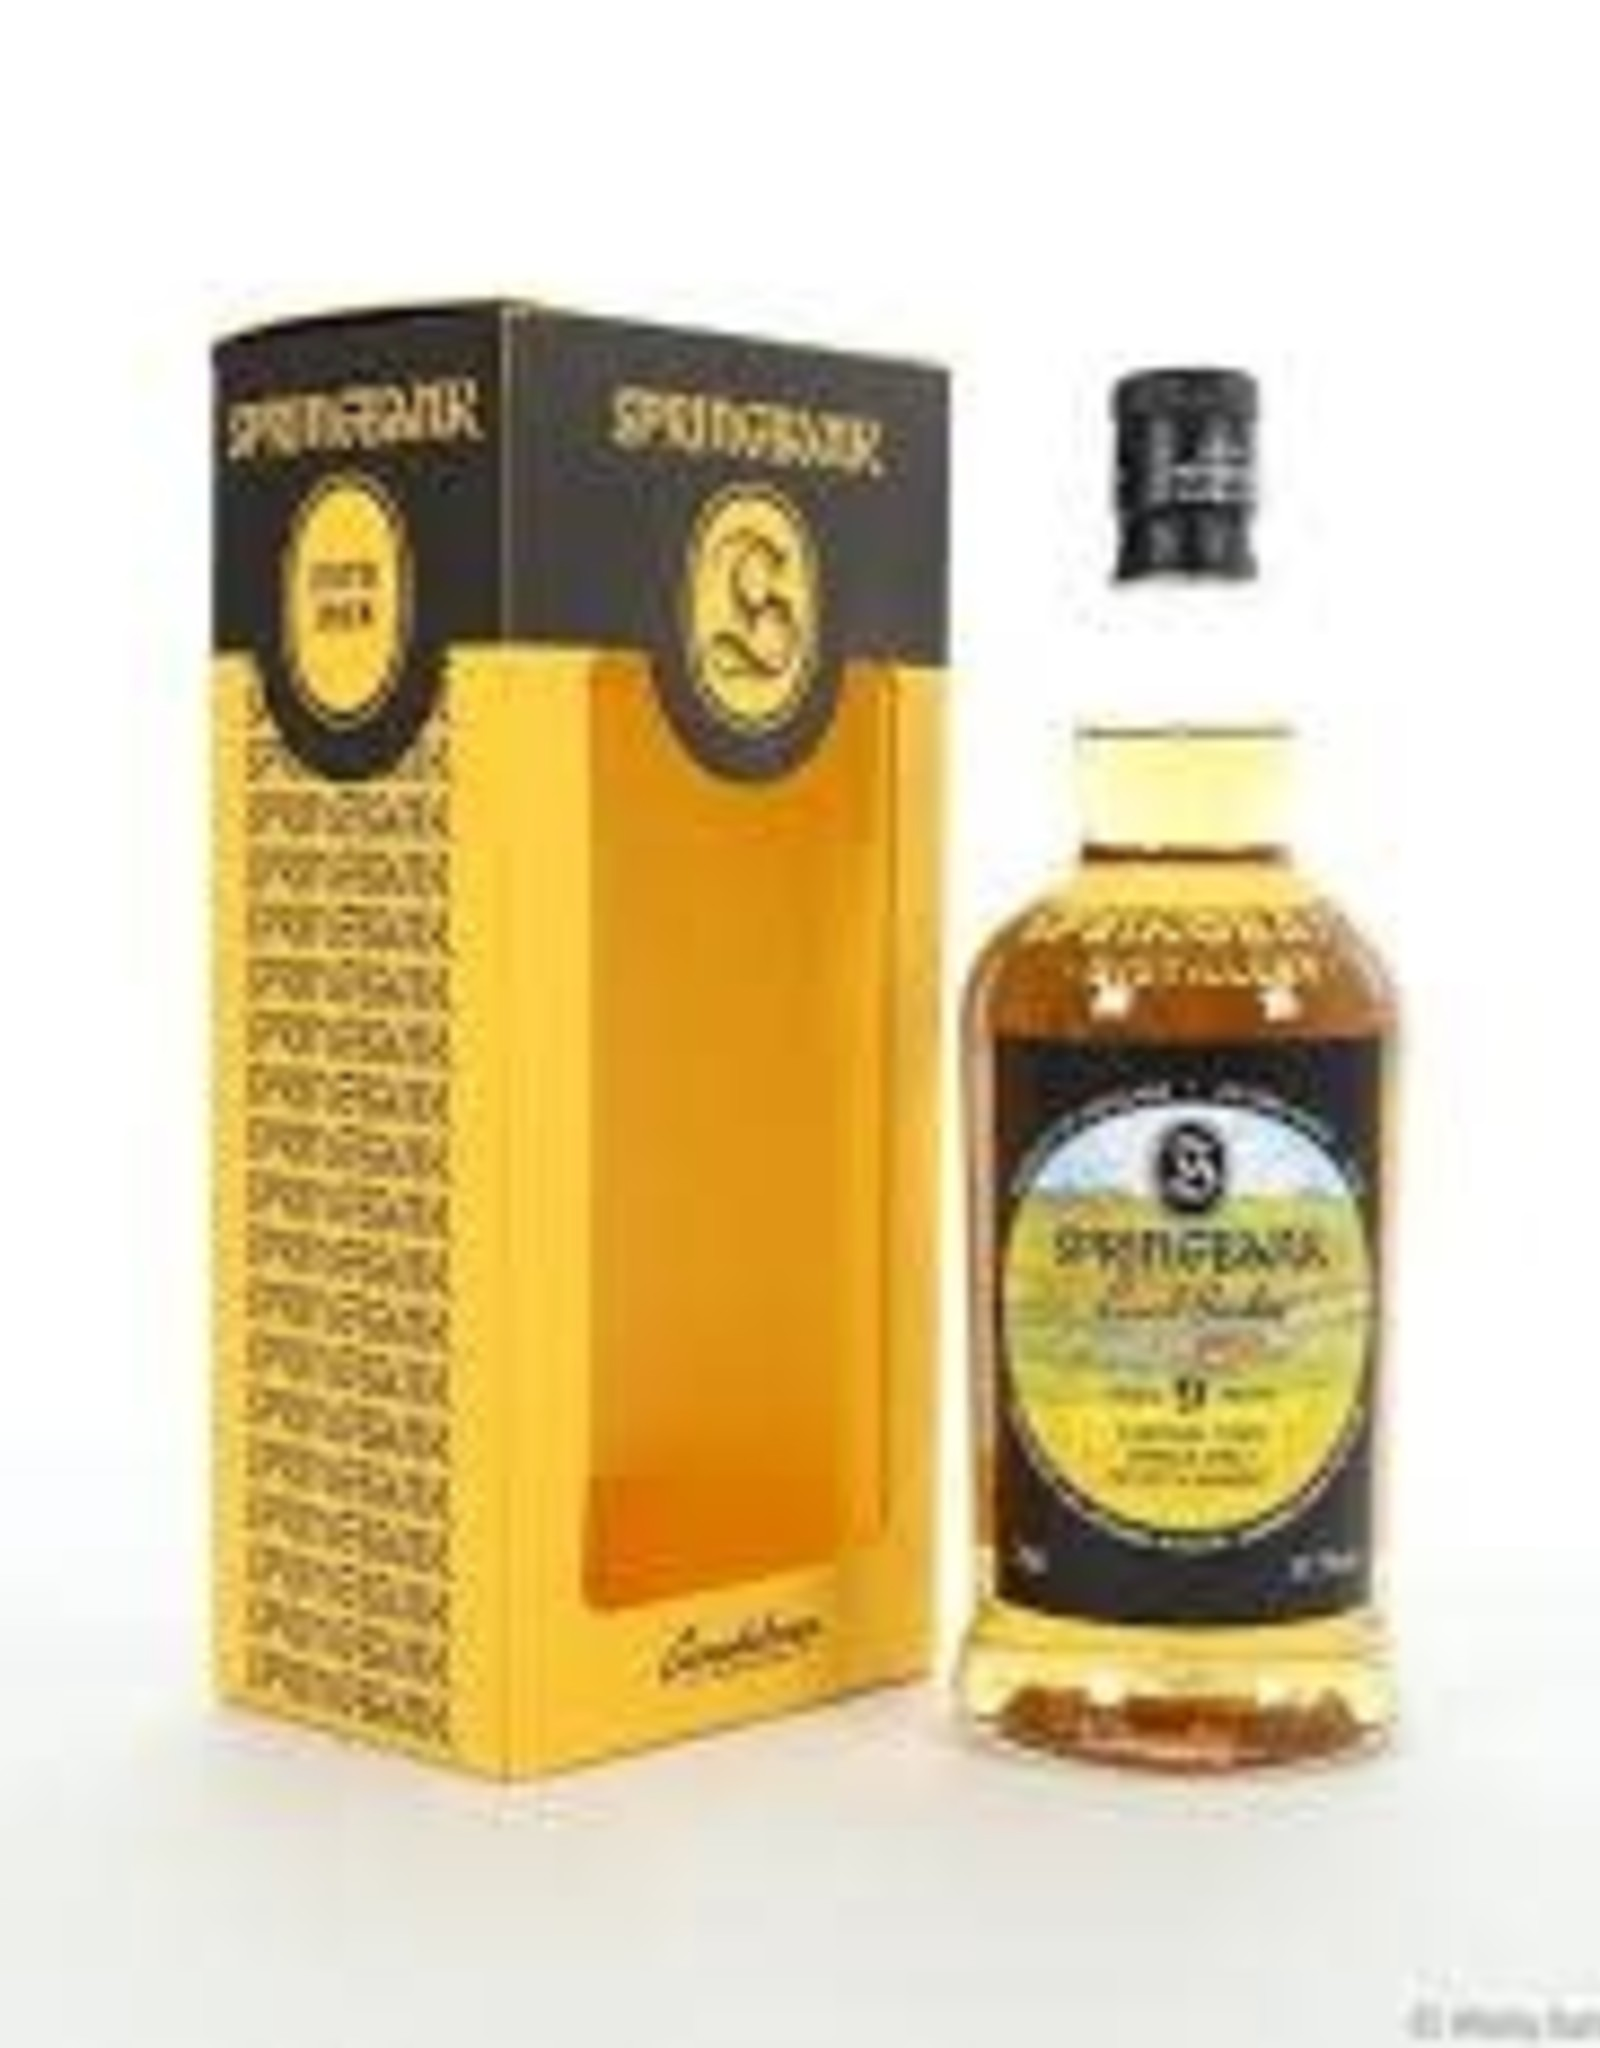 Scotch Whiskey, Single Malt, Campbeltown, 'Local Barley,' 9yr, Springbank